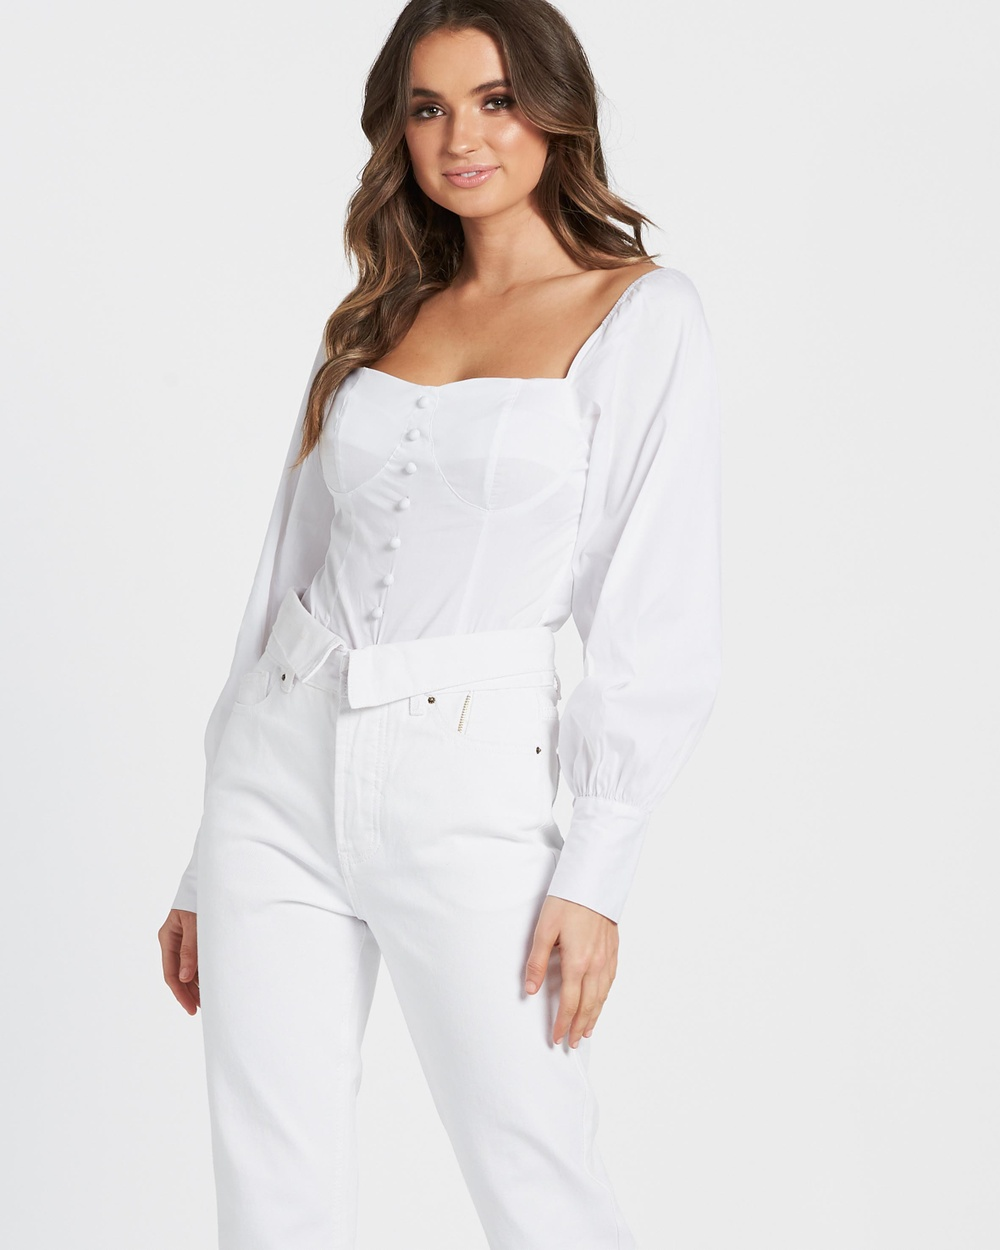 Lioness Hello Lover Top Tops White Hello Lover Top